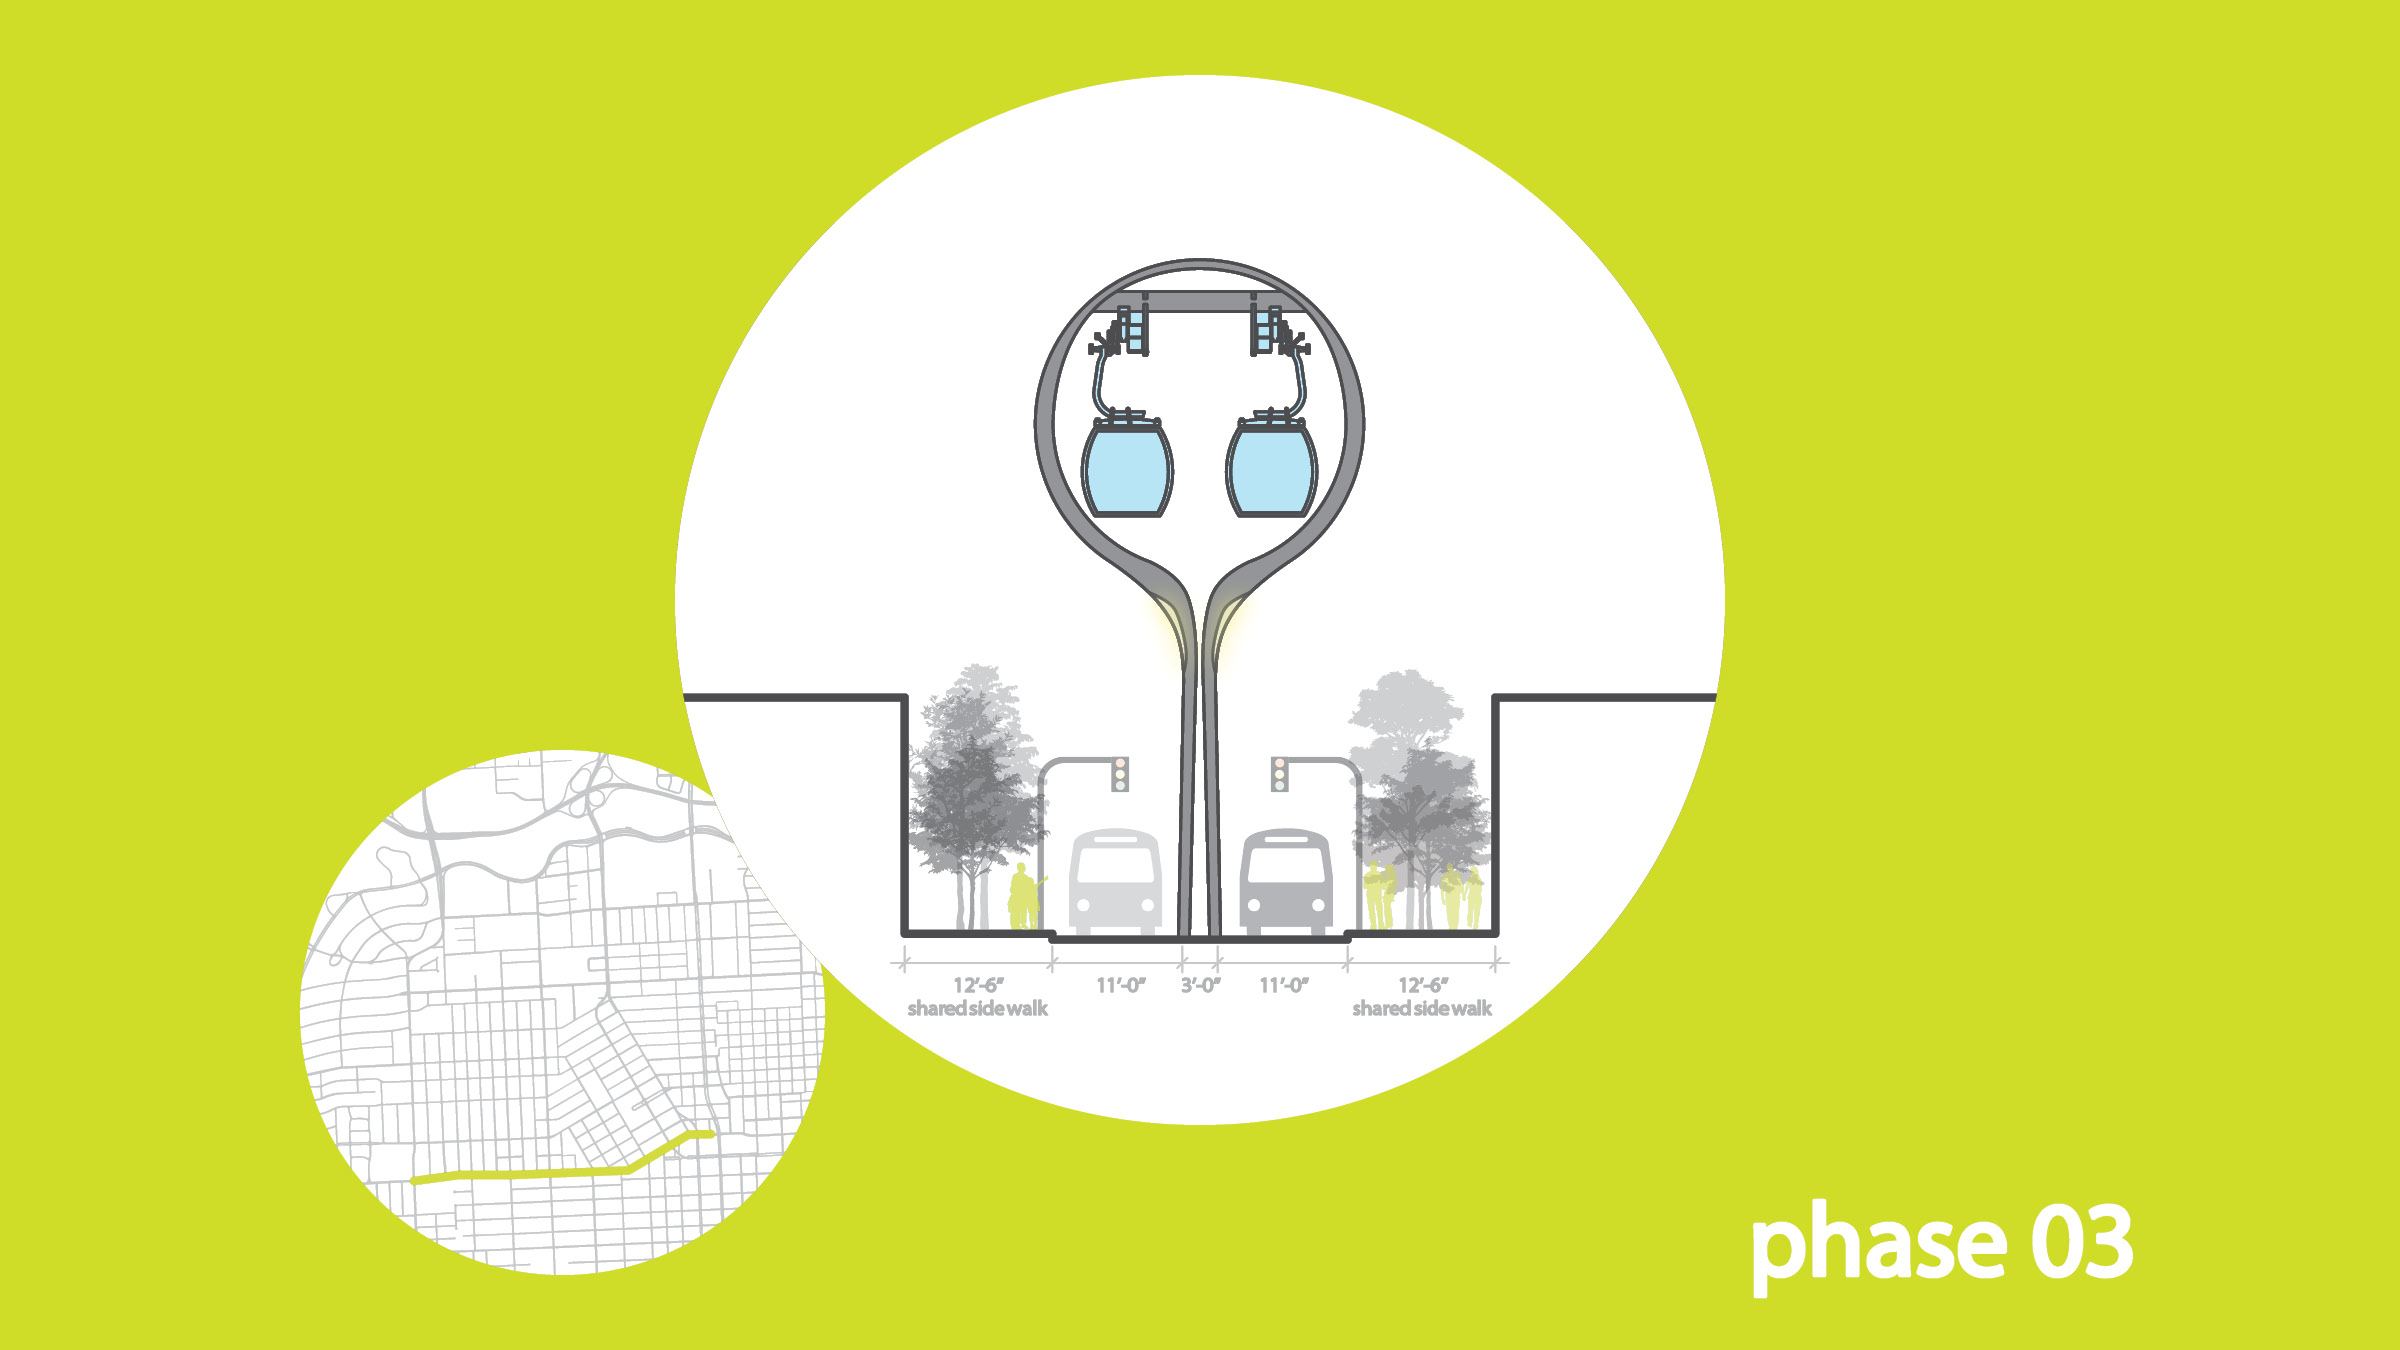 the iconic street lights in phase 03 grow a tower to support an alternative means of transportation,gondolas